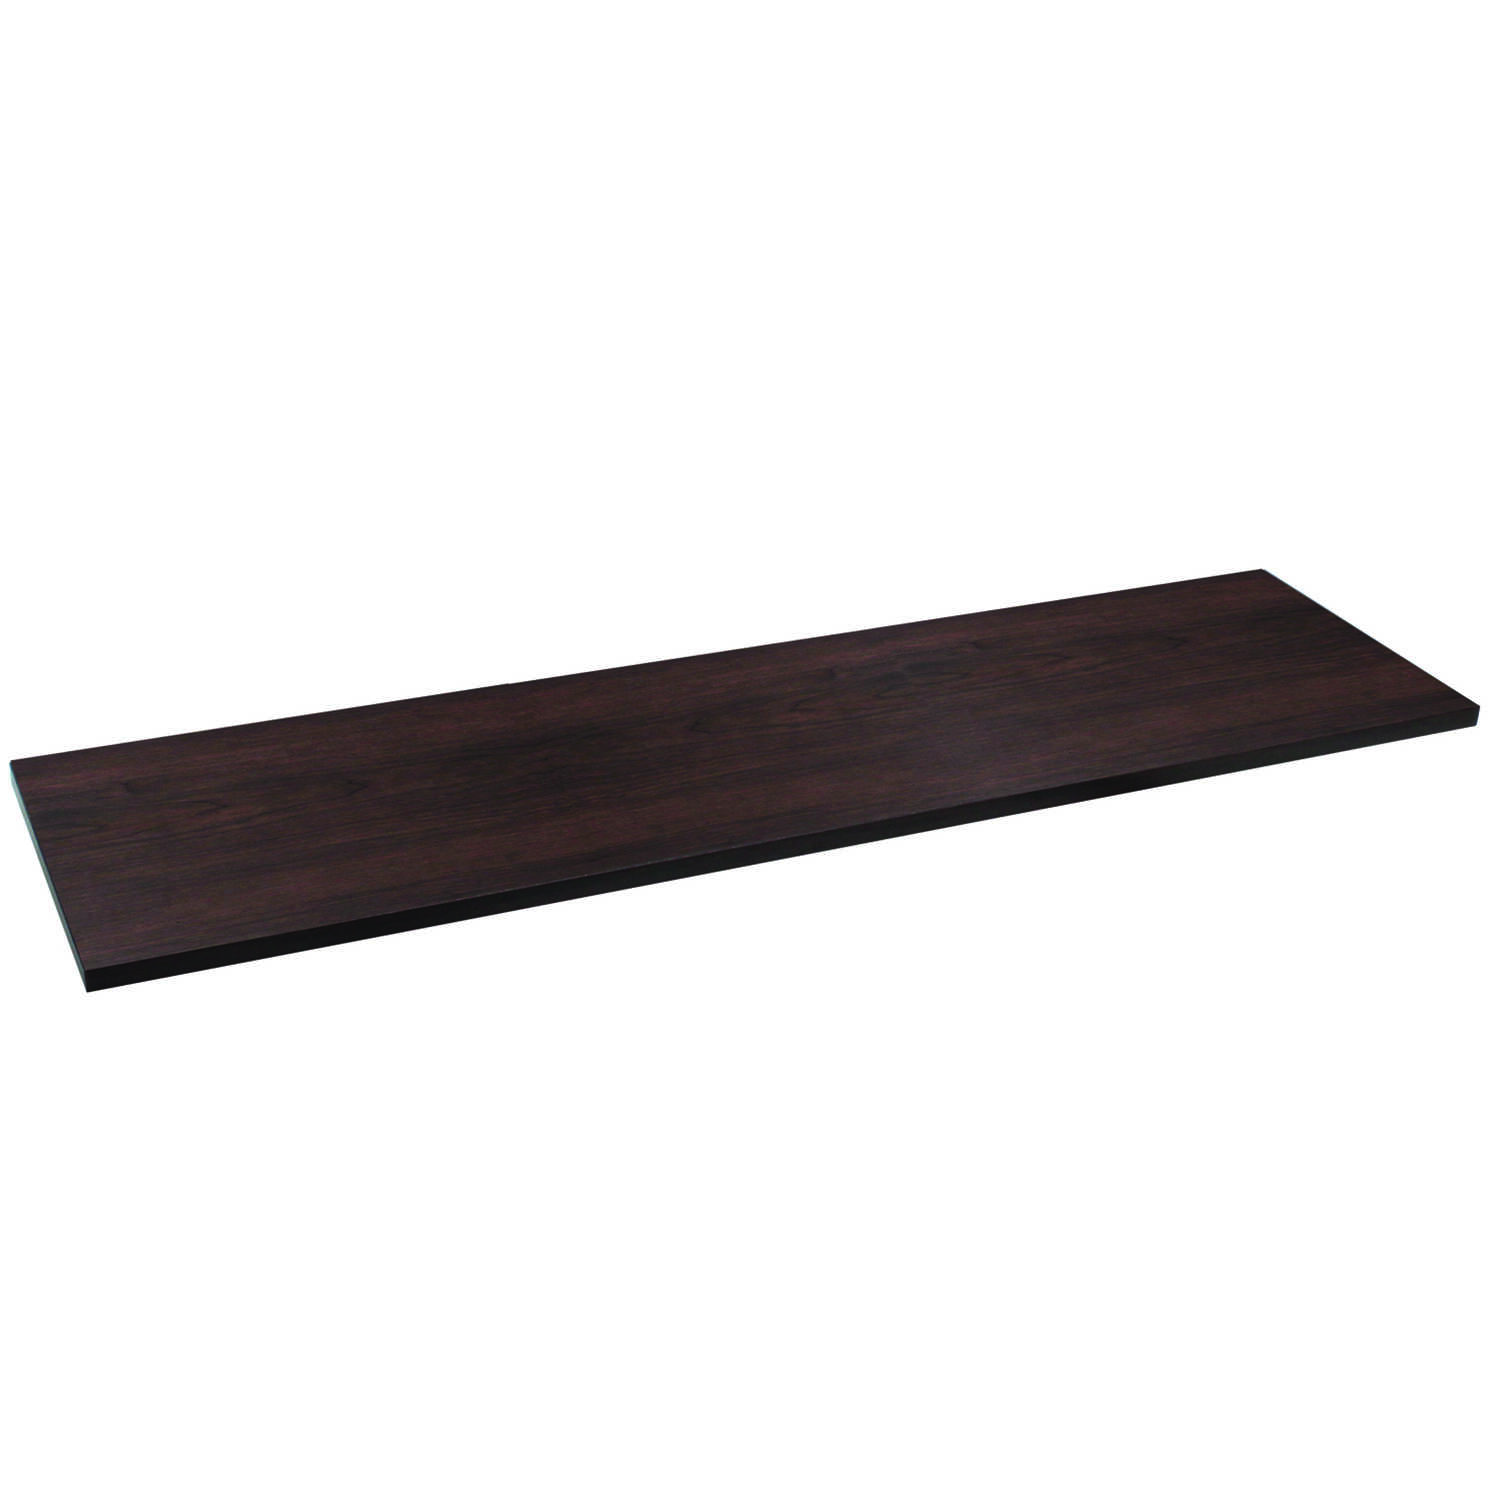 Knape & Vogt  8 in. W x 5/8 in. H x 48 in. D Espresso  Particle Board  Shelf